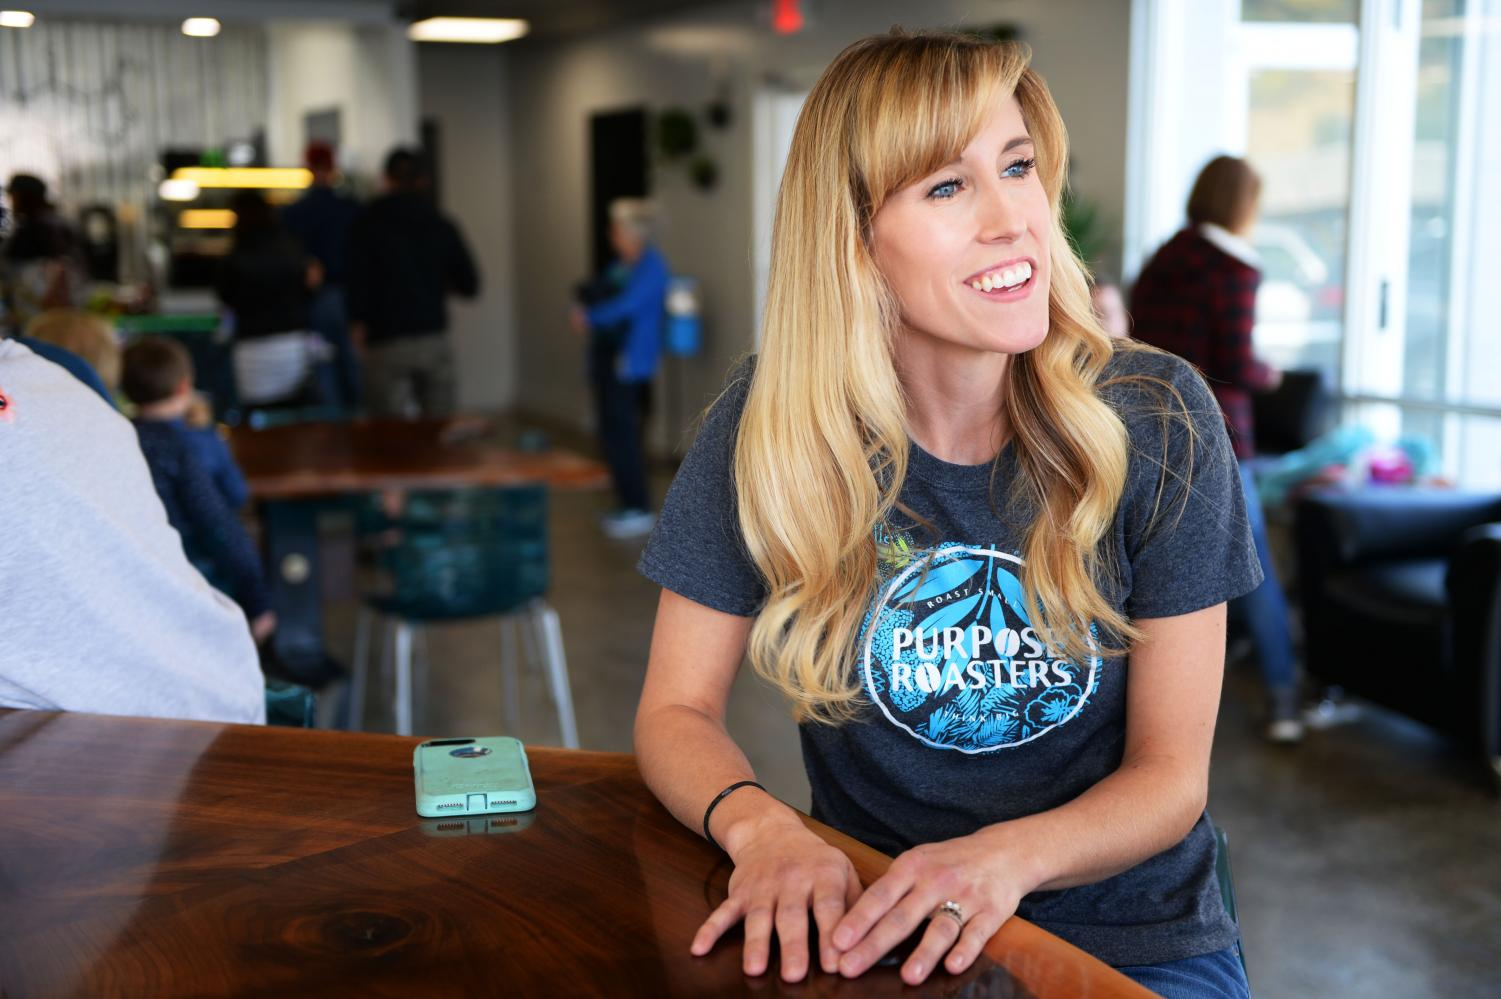 Owner Janelle Harrison talks about how she and her husband Travis Harrison began to brew coffee two years earlier in their garage which is the start to their coffee business on Saturday at Purpose Roasters in Colfax.